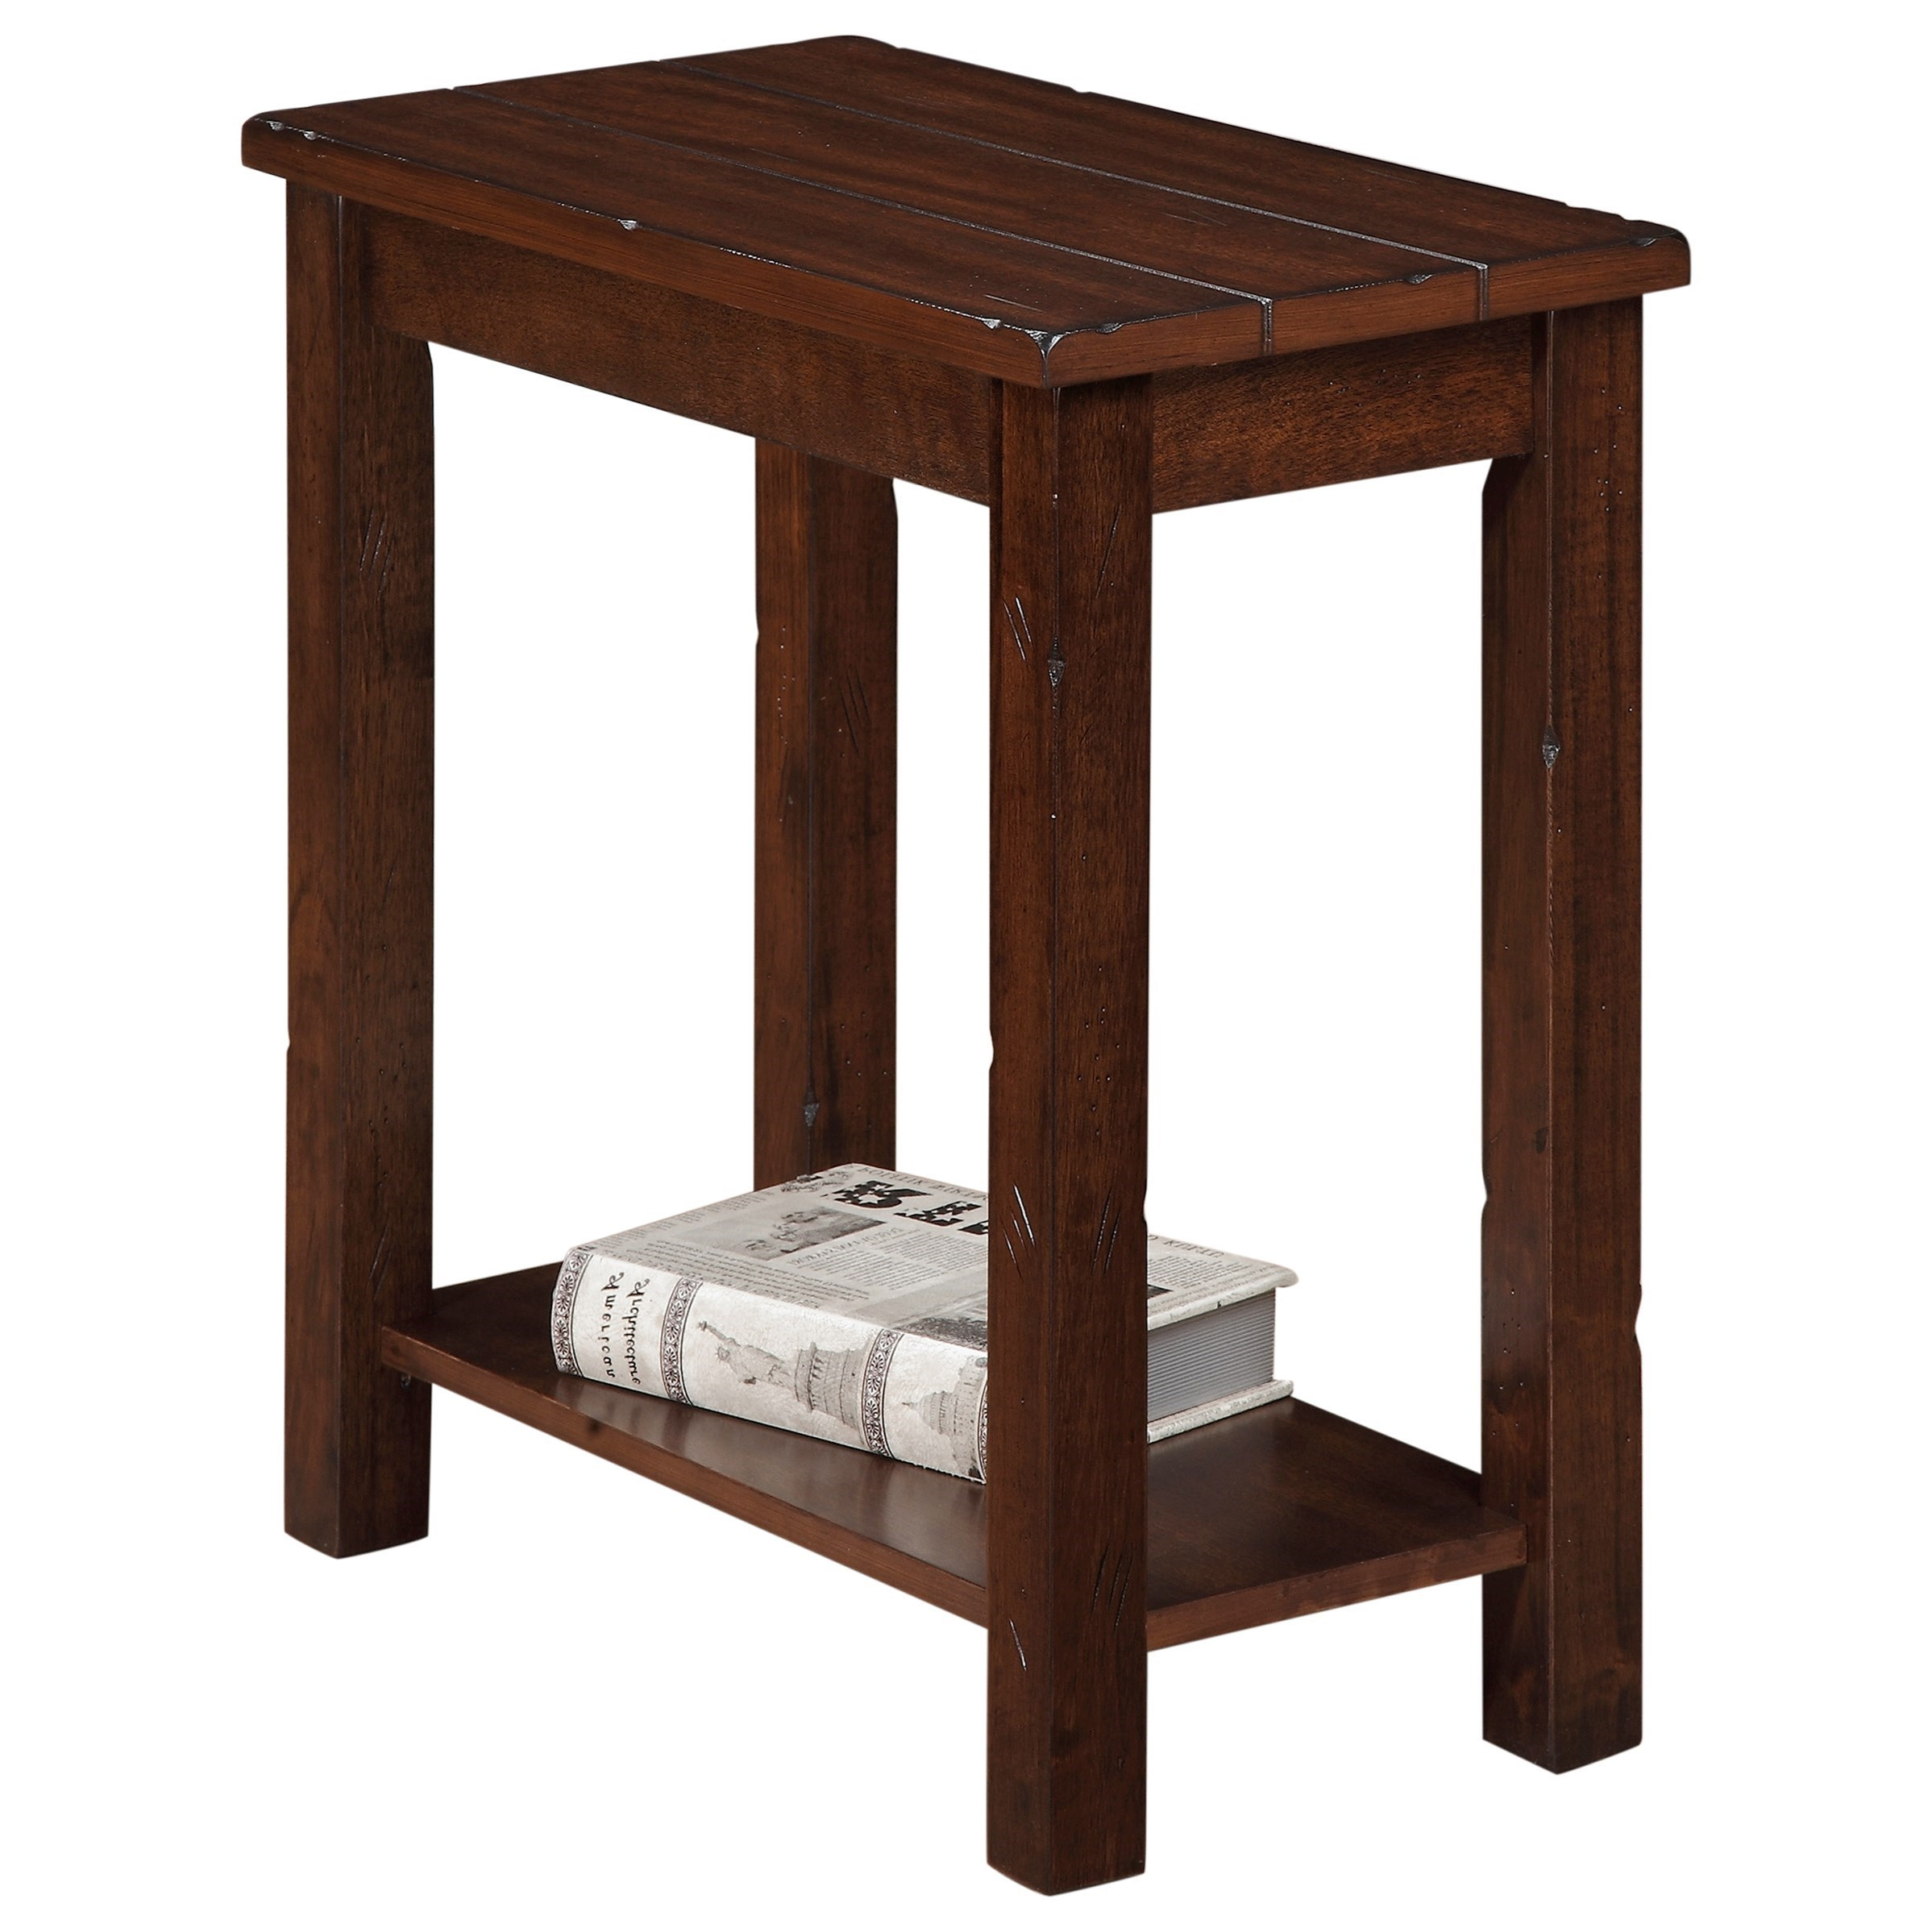 Crown Mark Chairside Tables Quinn Chairside Table - Item Number: 7164